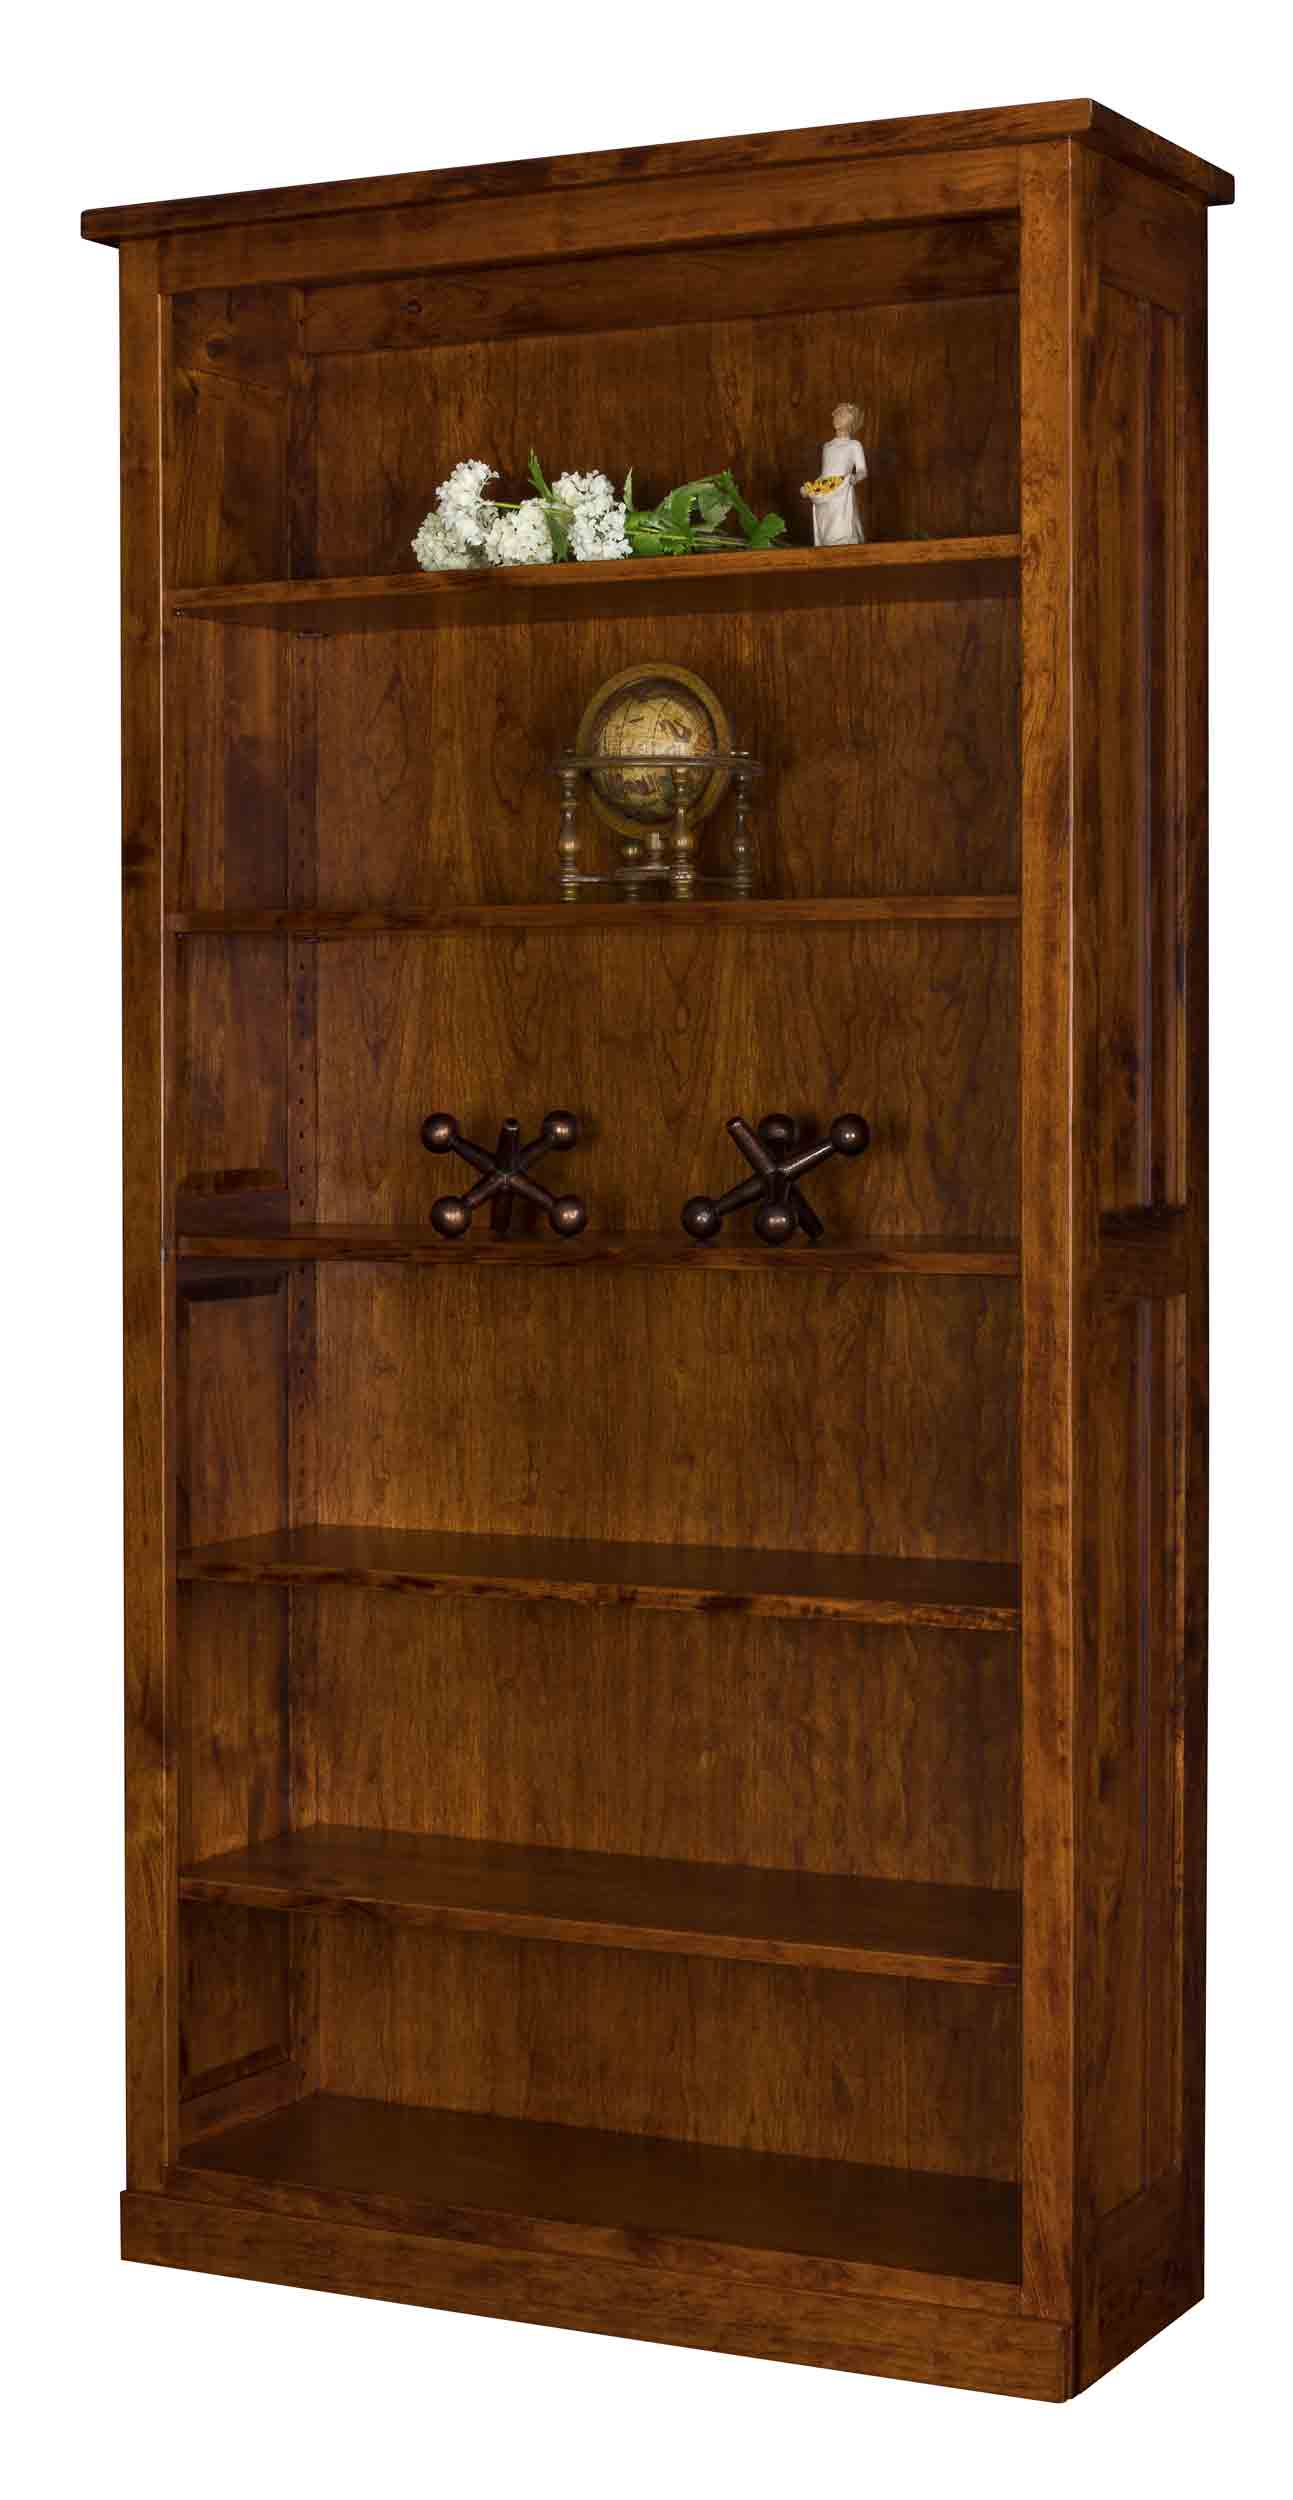 Freemont Mission Bookcases Fmb30 For 598 00 In Office